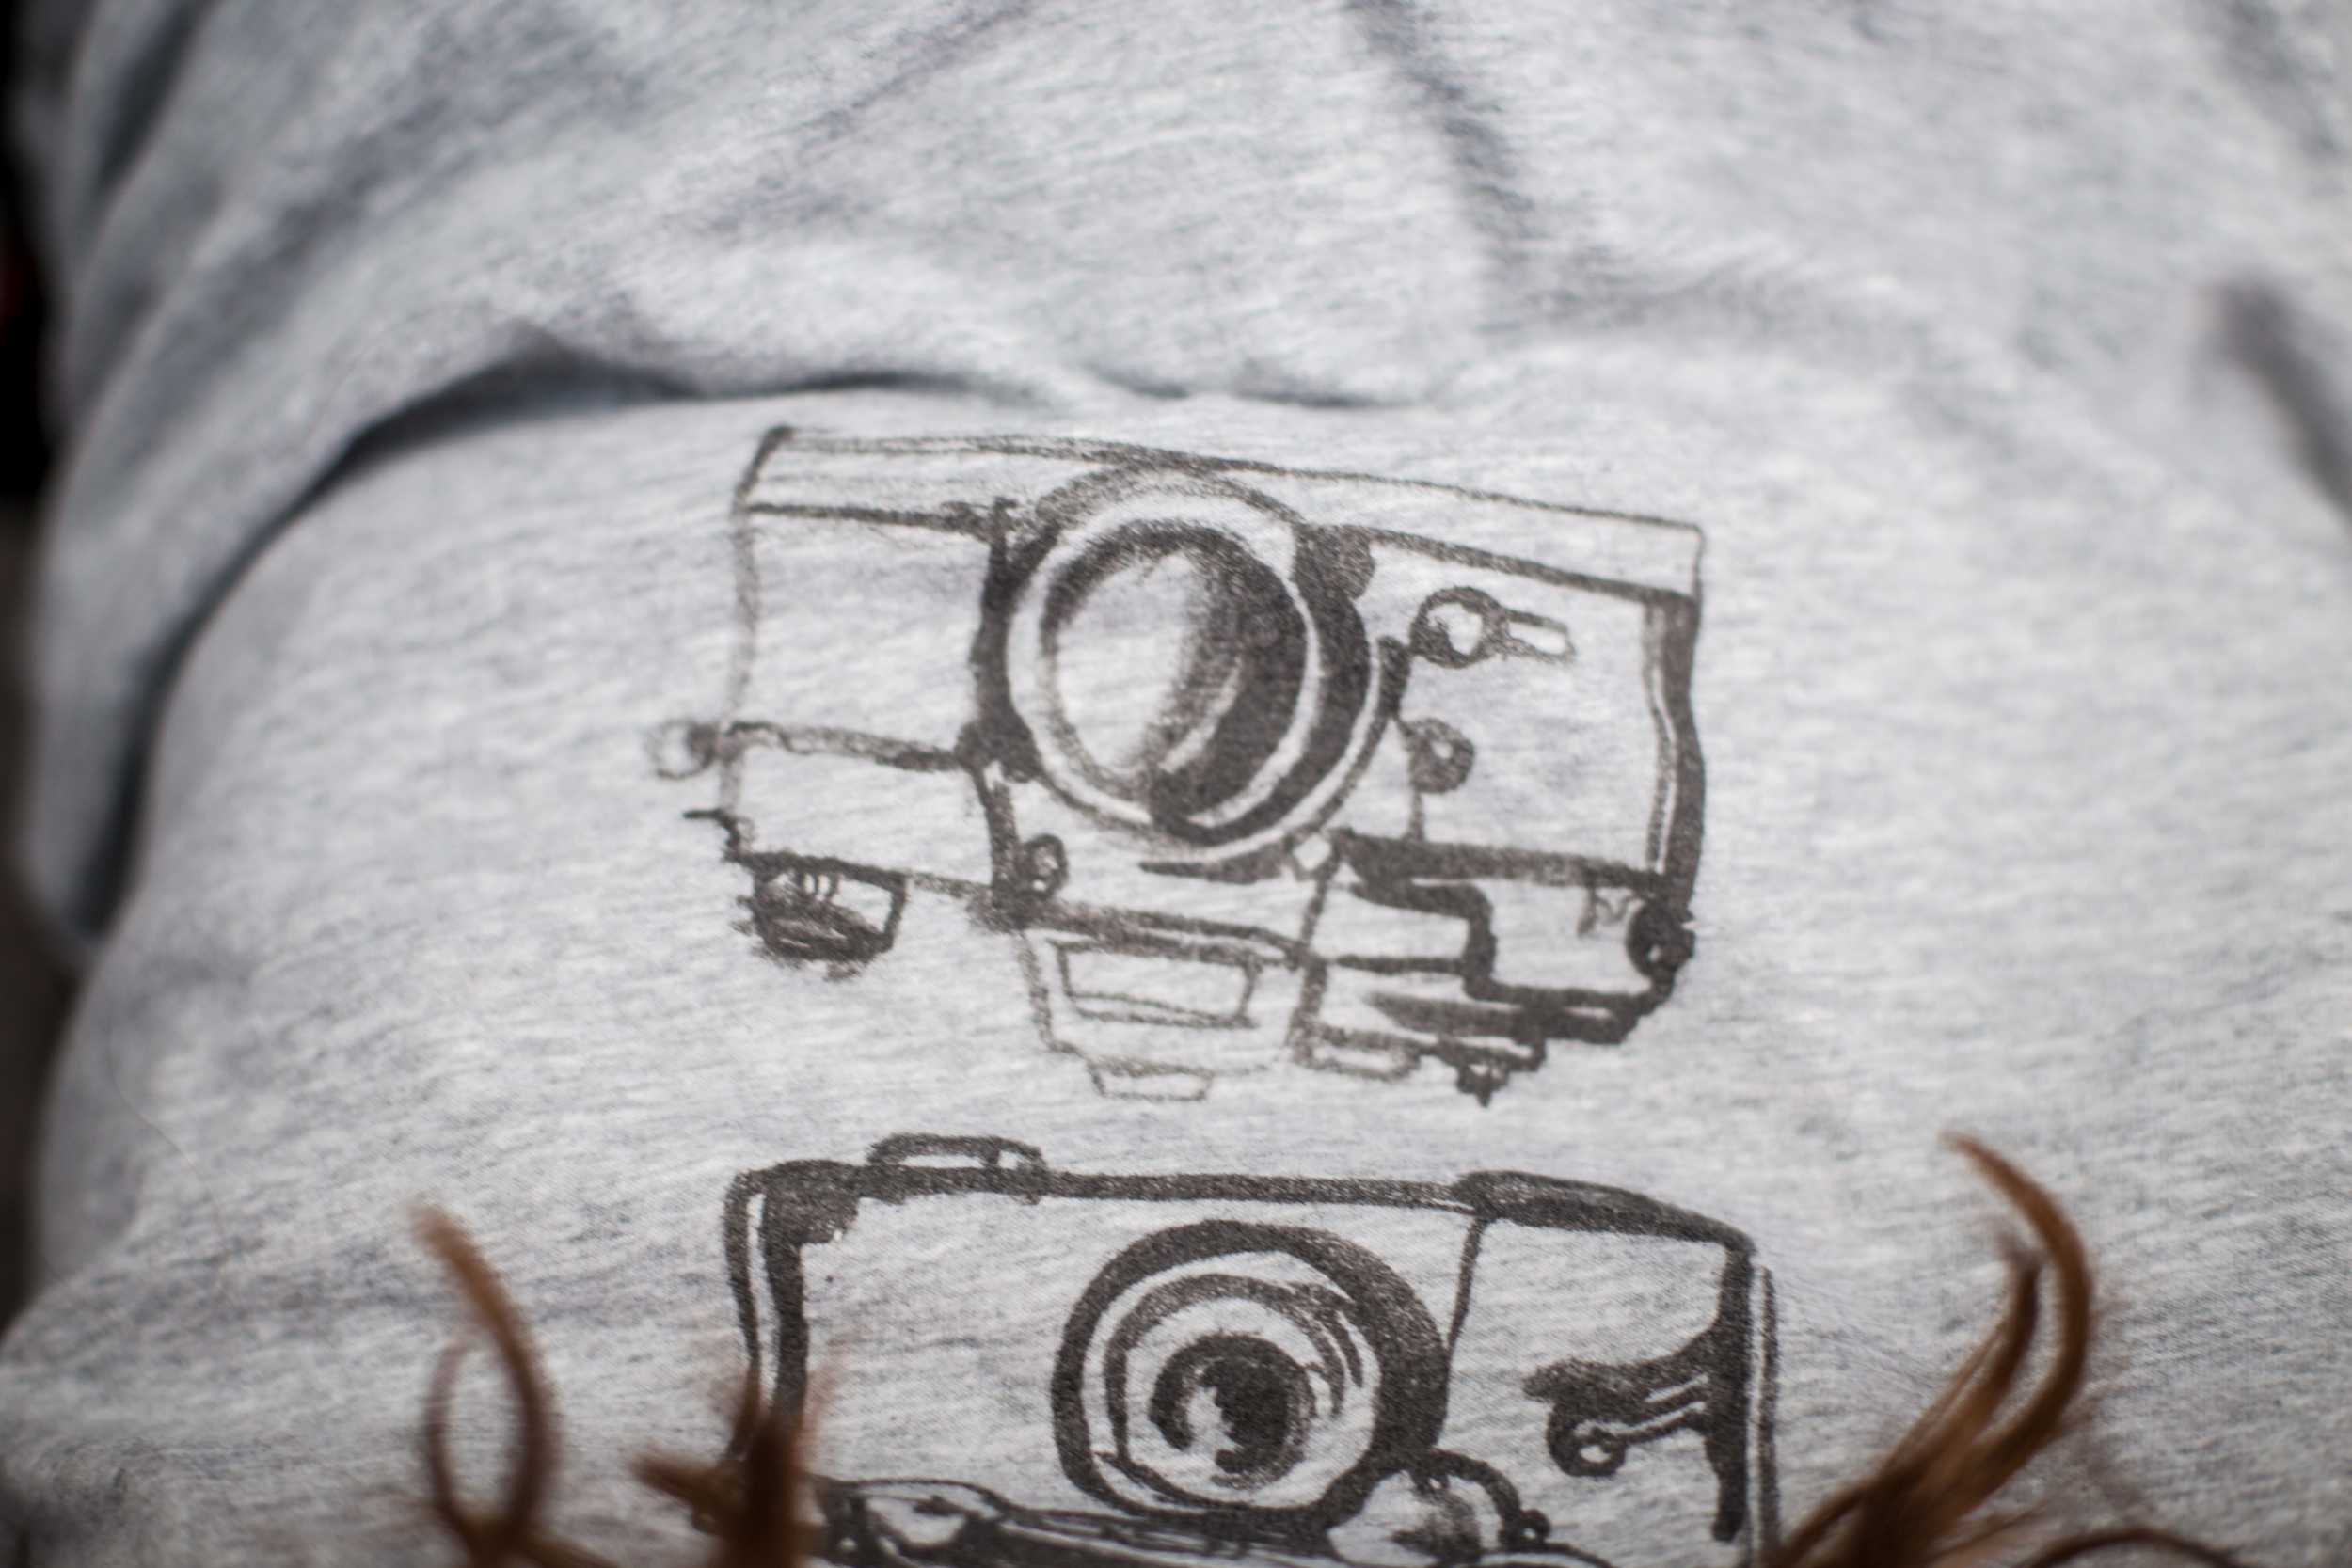 93 // 366 New shirt/cameras are my life